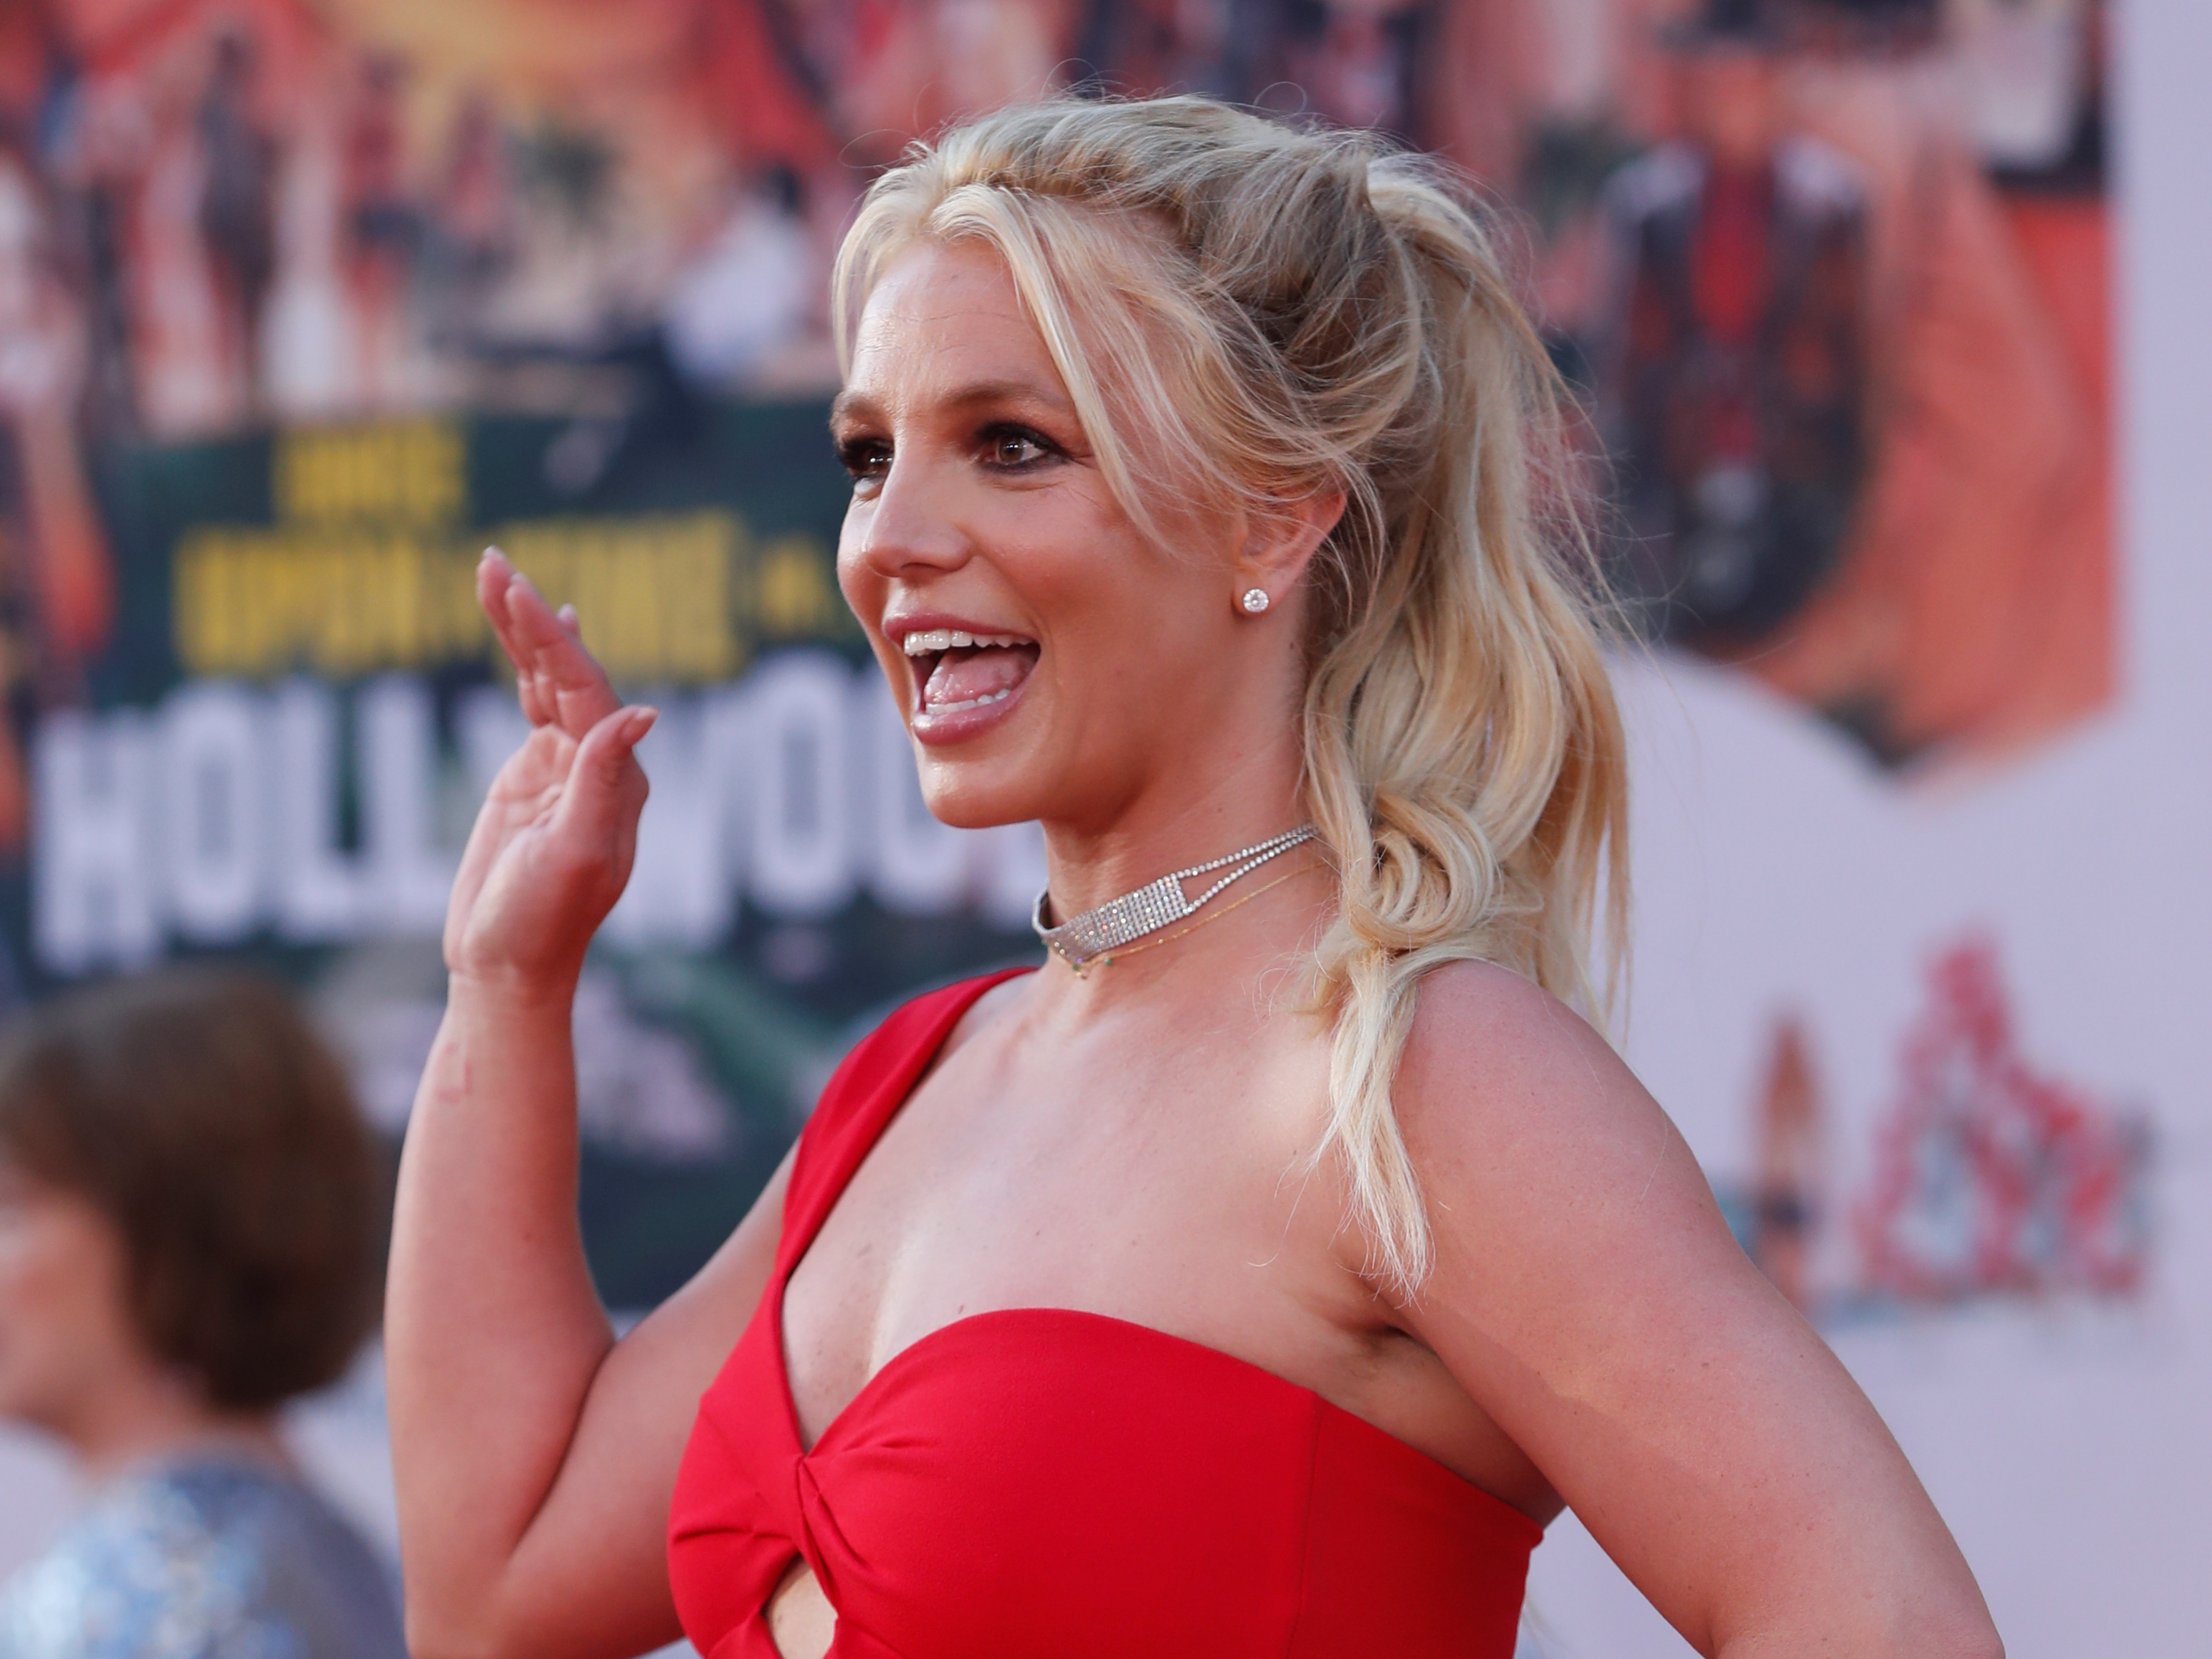 Britney Spears hasn't legally managed her $59 million fortune in 12 years. Here's how the pop icon makes and spends her money, from Scheme browsing trips to California mansions.